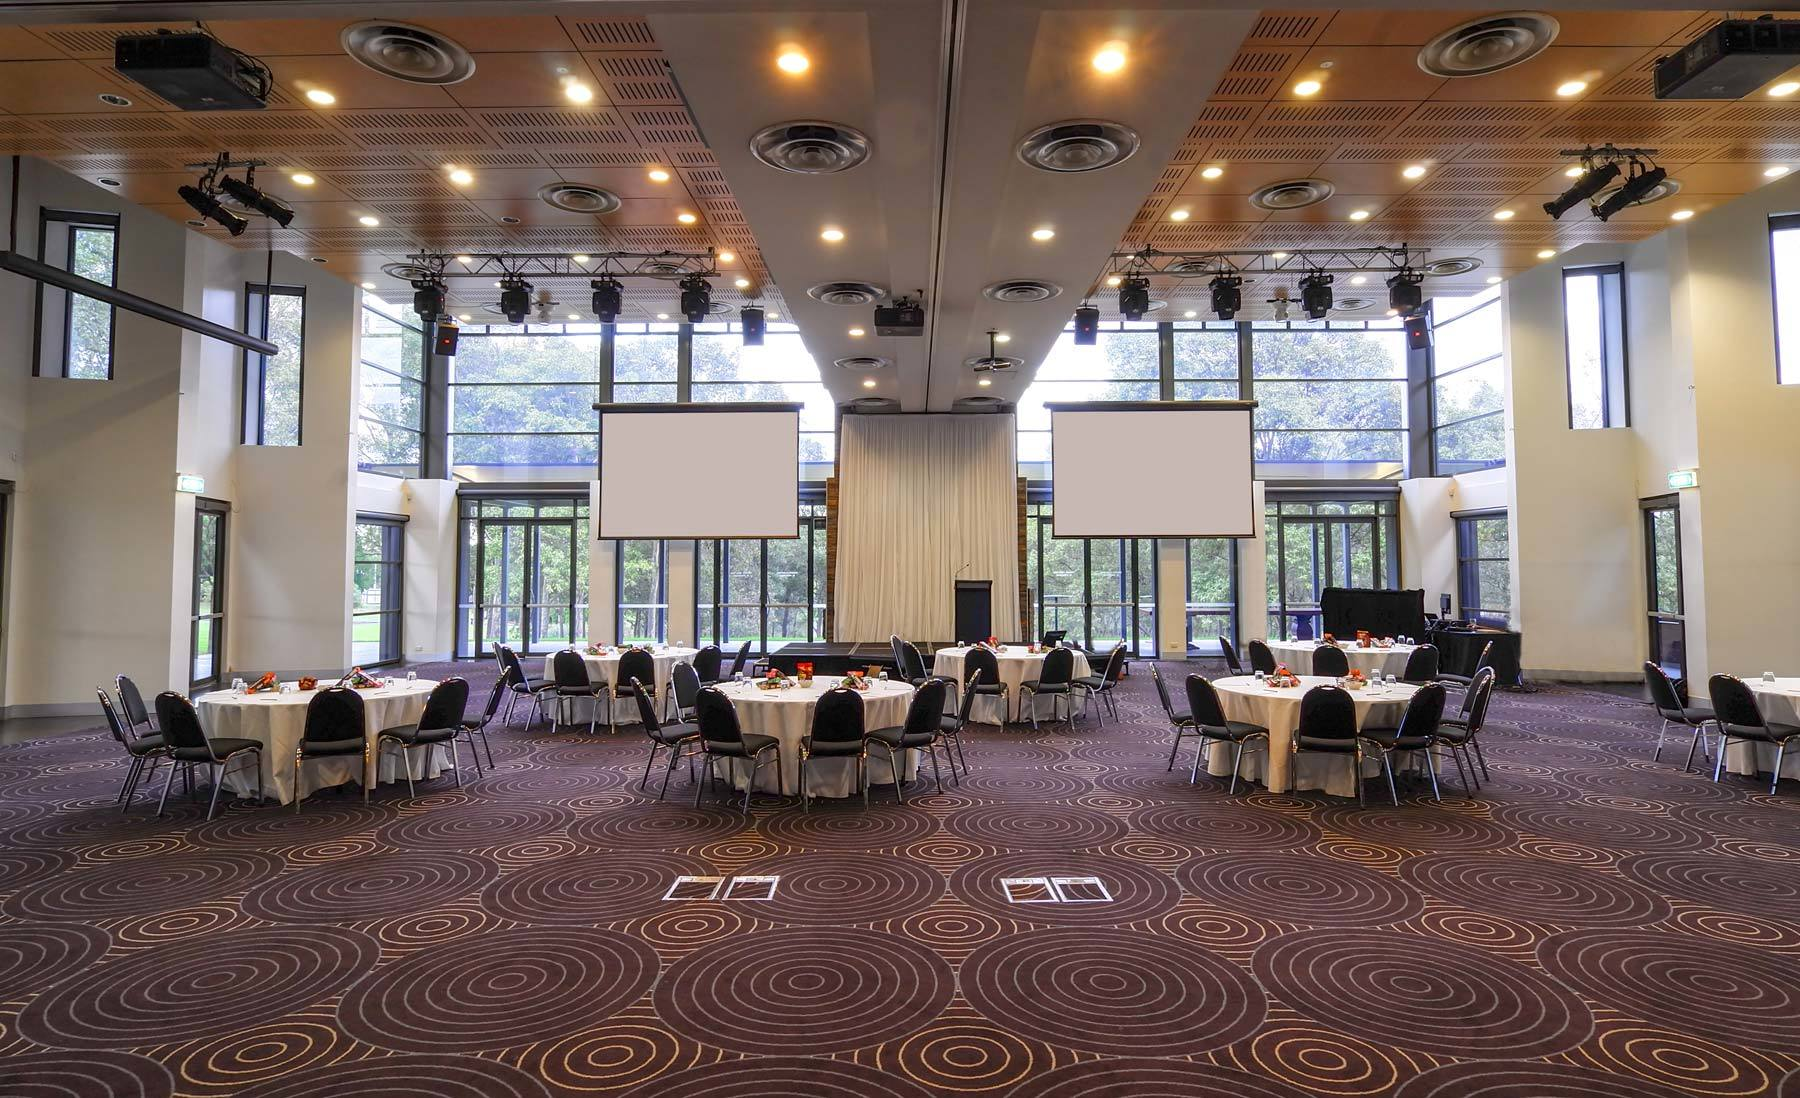 Lakes Waterview Is The Ideal Location To Host Your Business Event Motivate Delegates With This Serene Setting Located Within Bicentennial Park